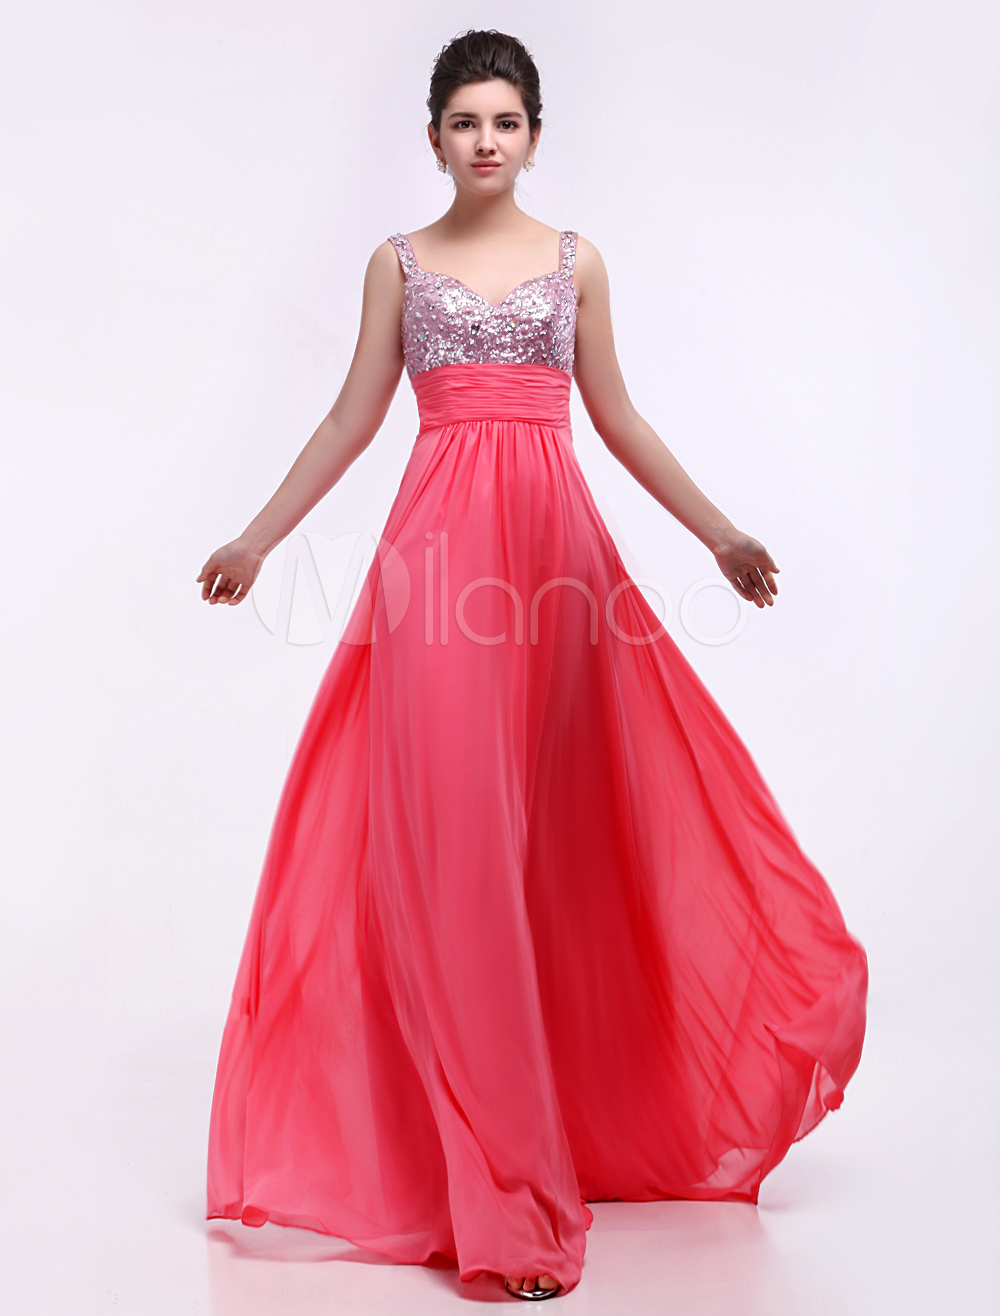 Candy Pink Sequined Chiffon Elastic Woven Satin Prom Dress